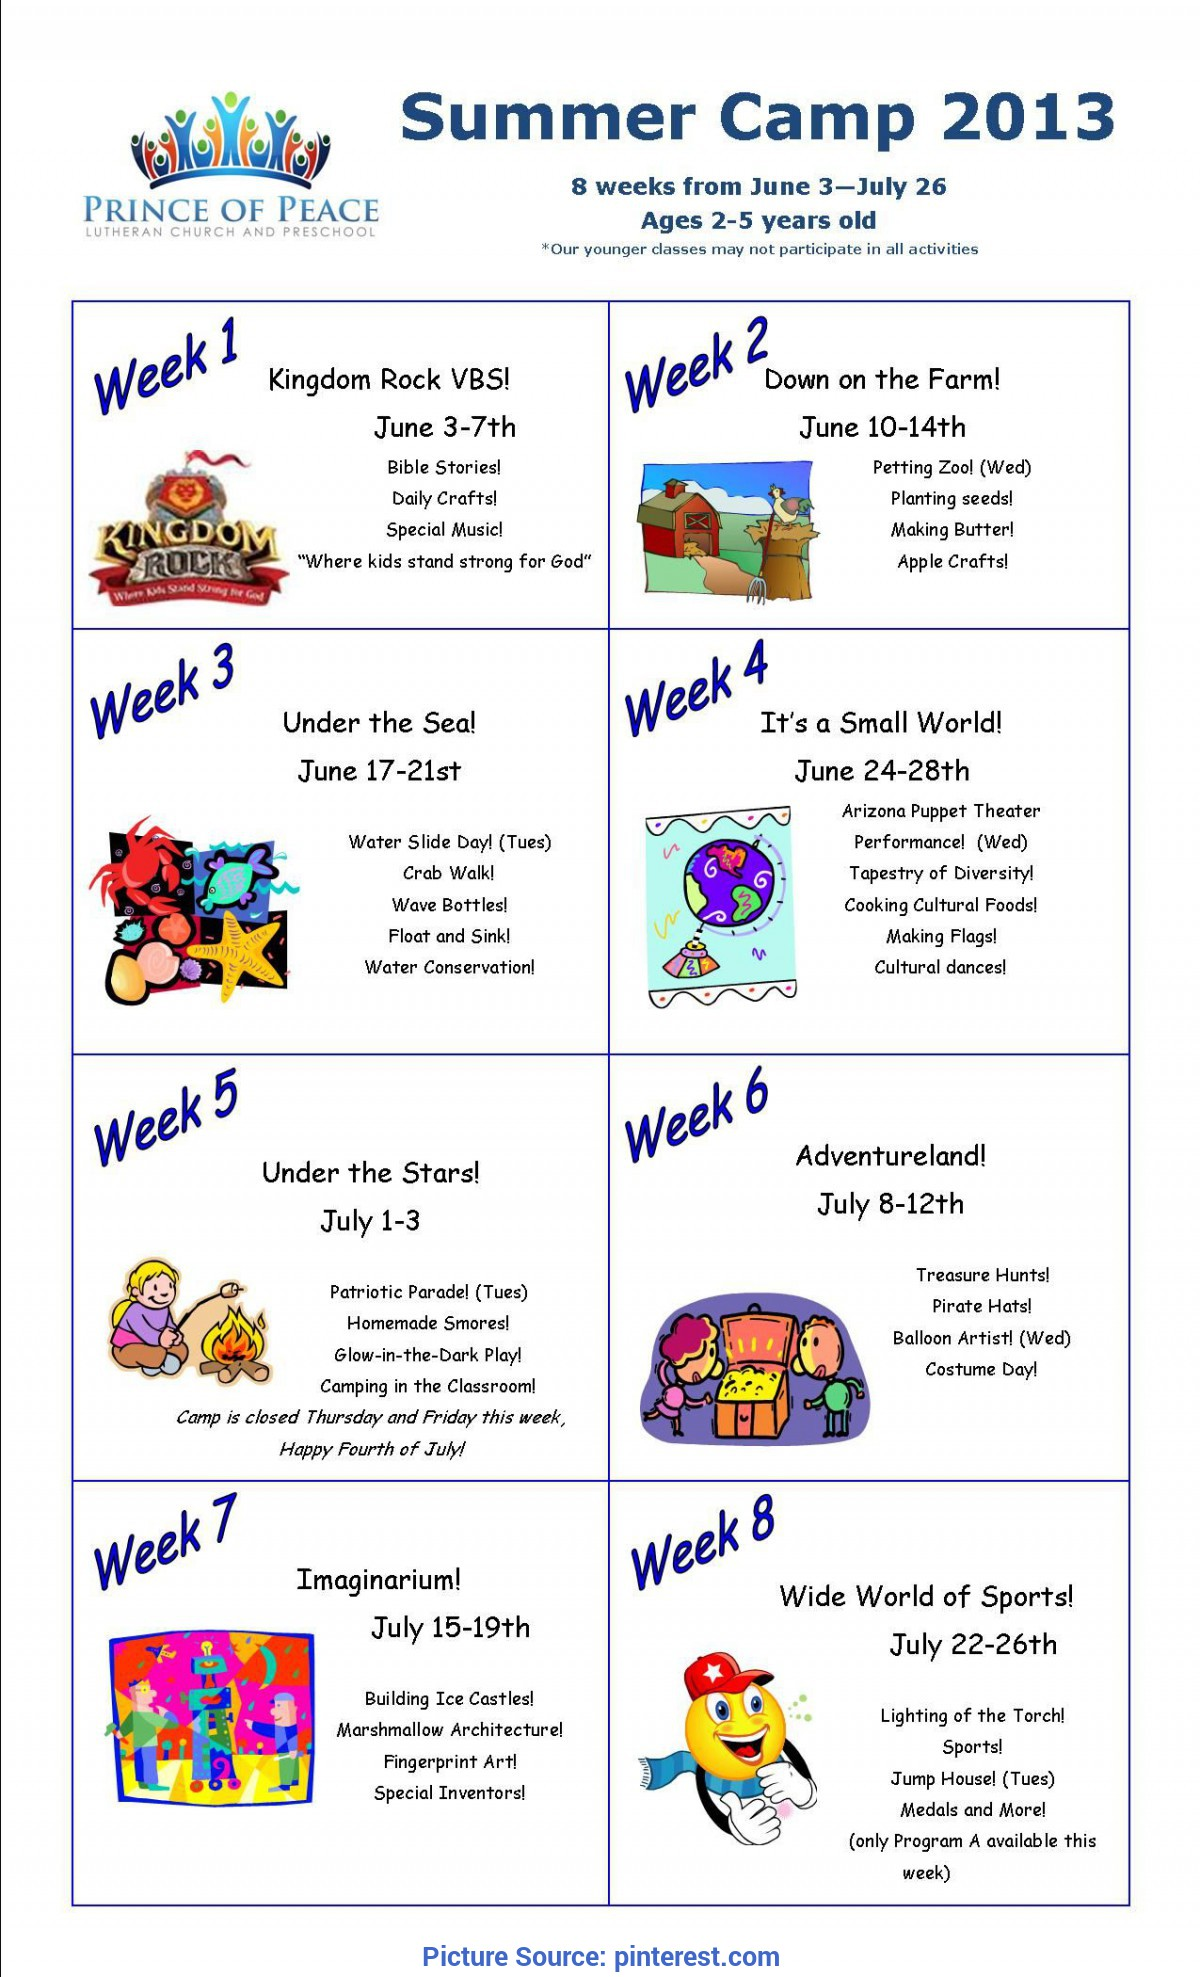 Briliant Preschool Weekly Themes For The Year Summer Camp Calendar 2013 - I Love This Idea To Devote A Week T